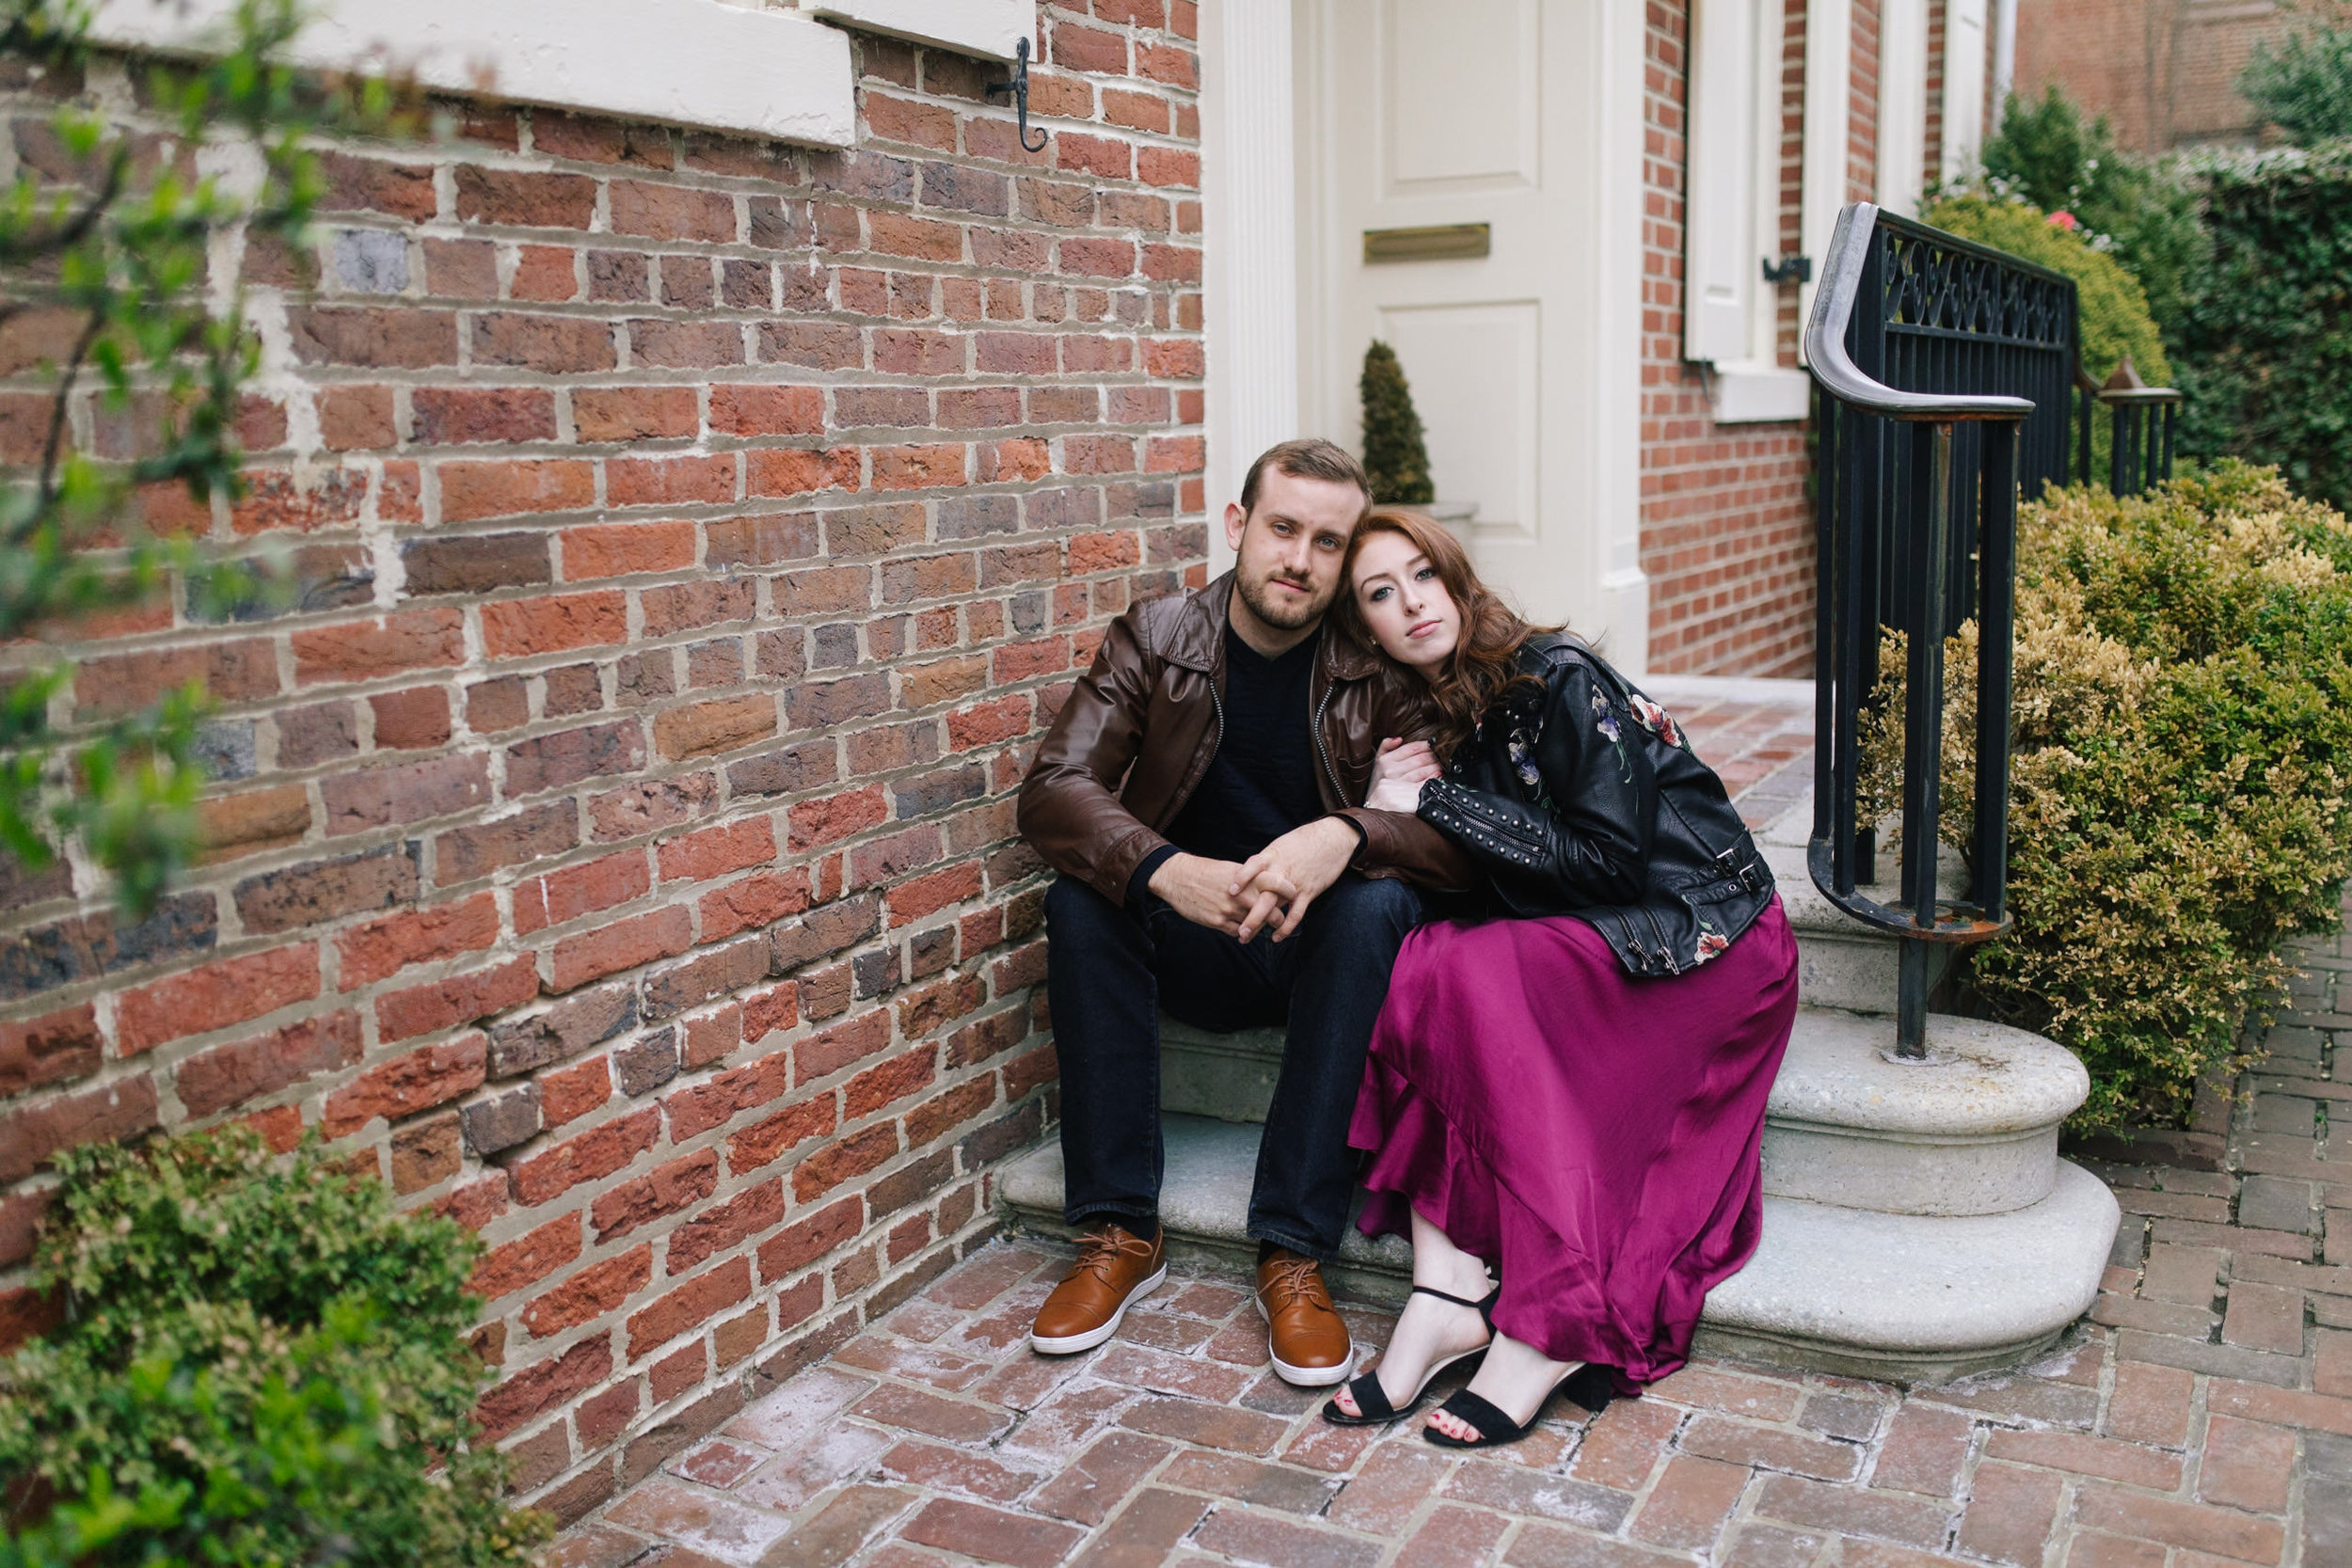 A leather jacket and maroon dress and a brick wall at this DC Area Engagement Shoot - Alexandria, VA